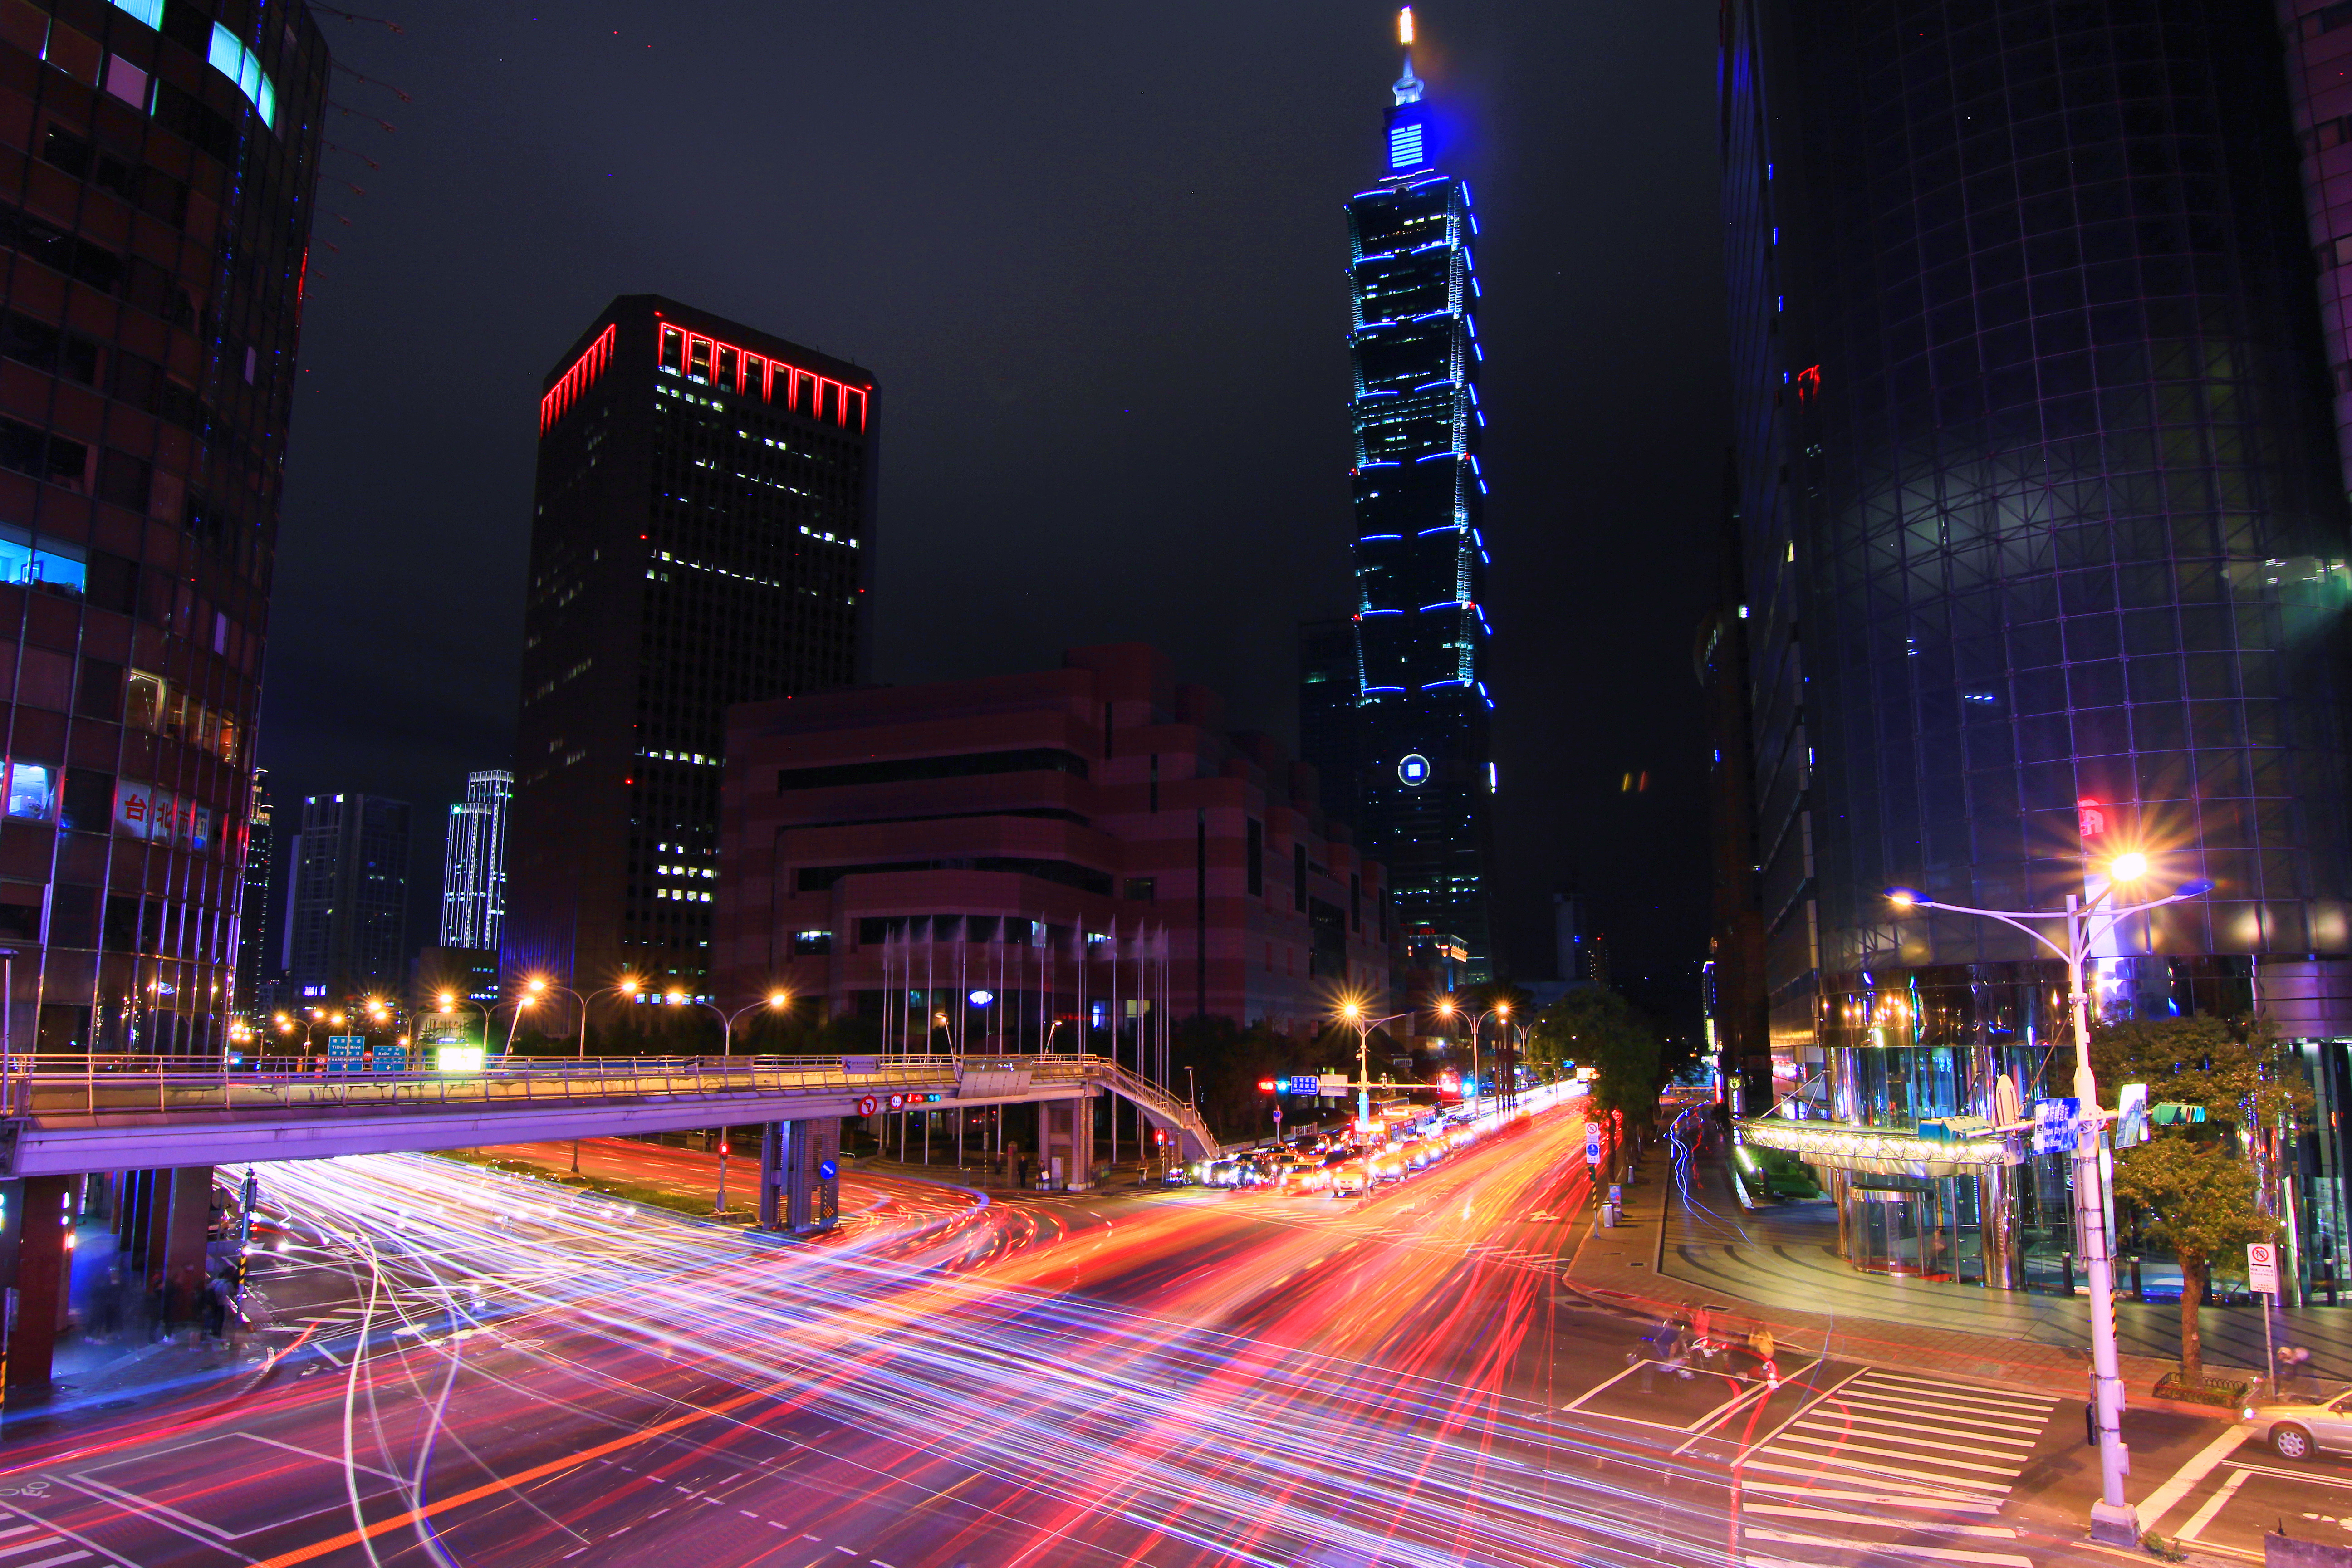 taipei 101 5k retina ultra hd wallpaper and background image